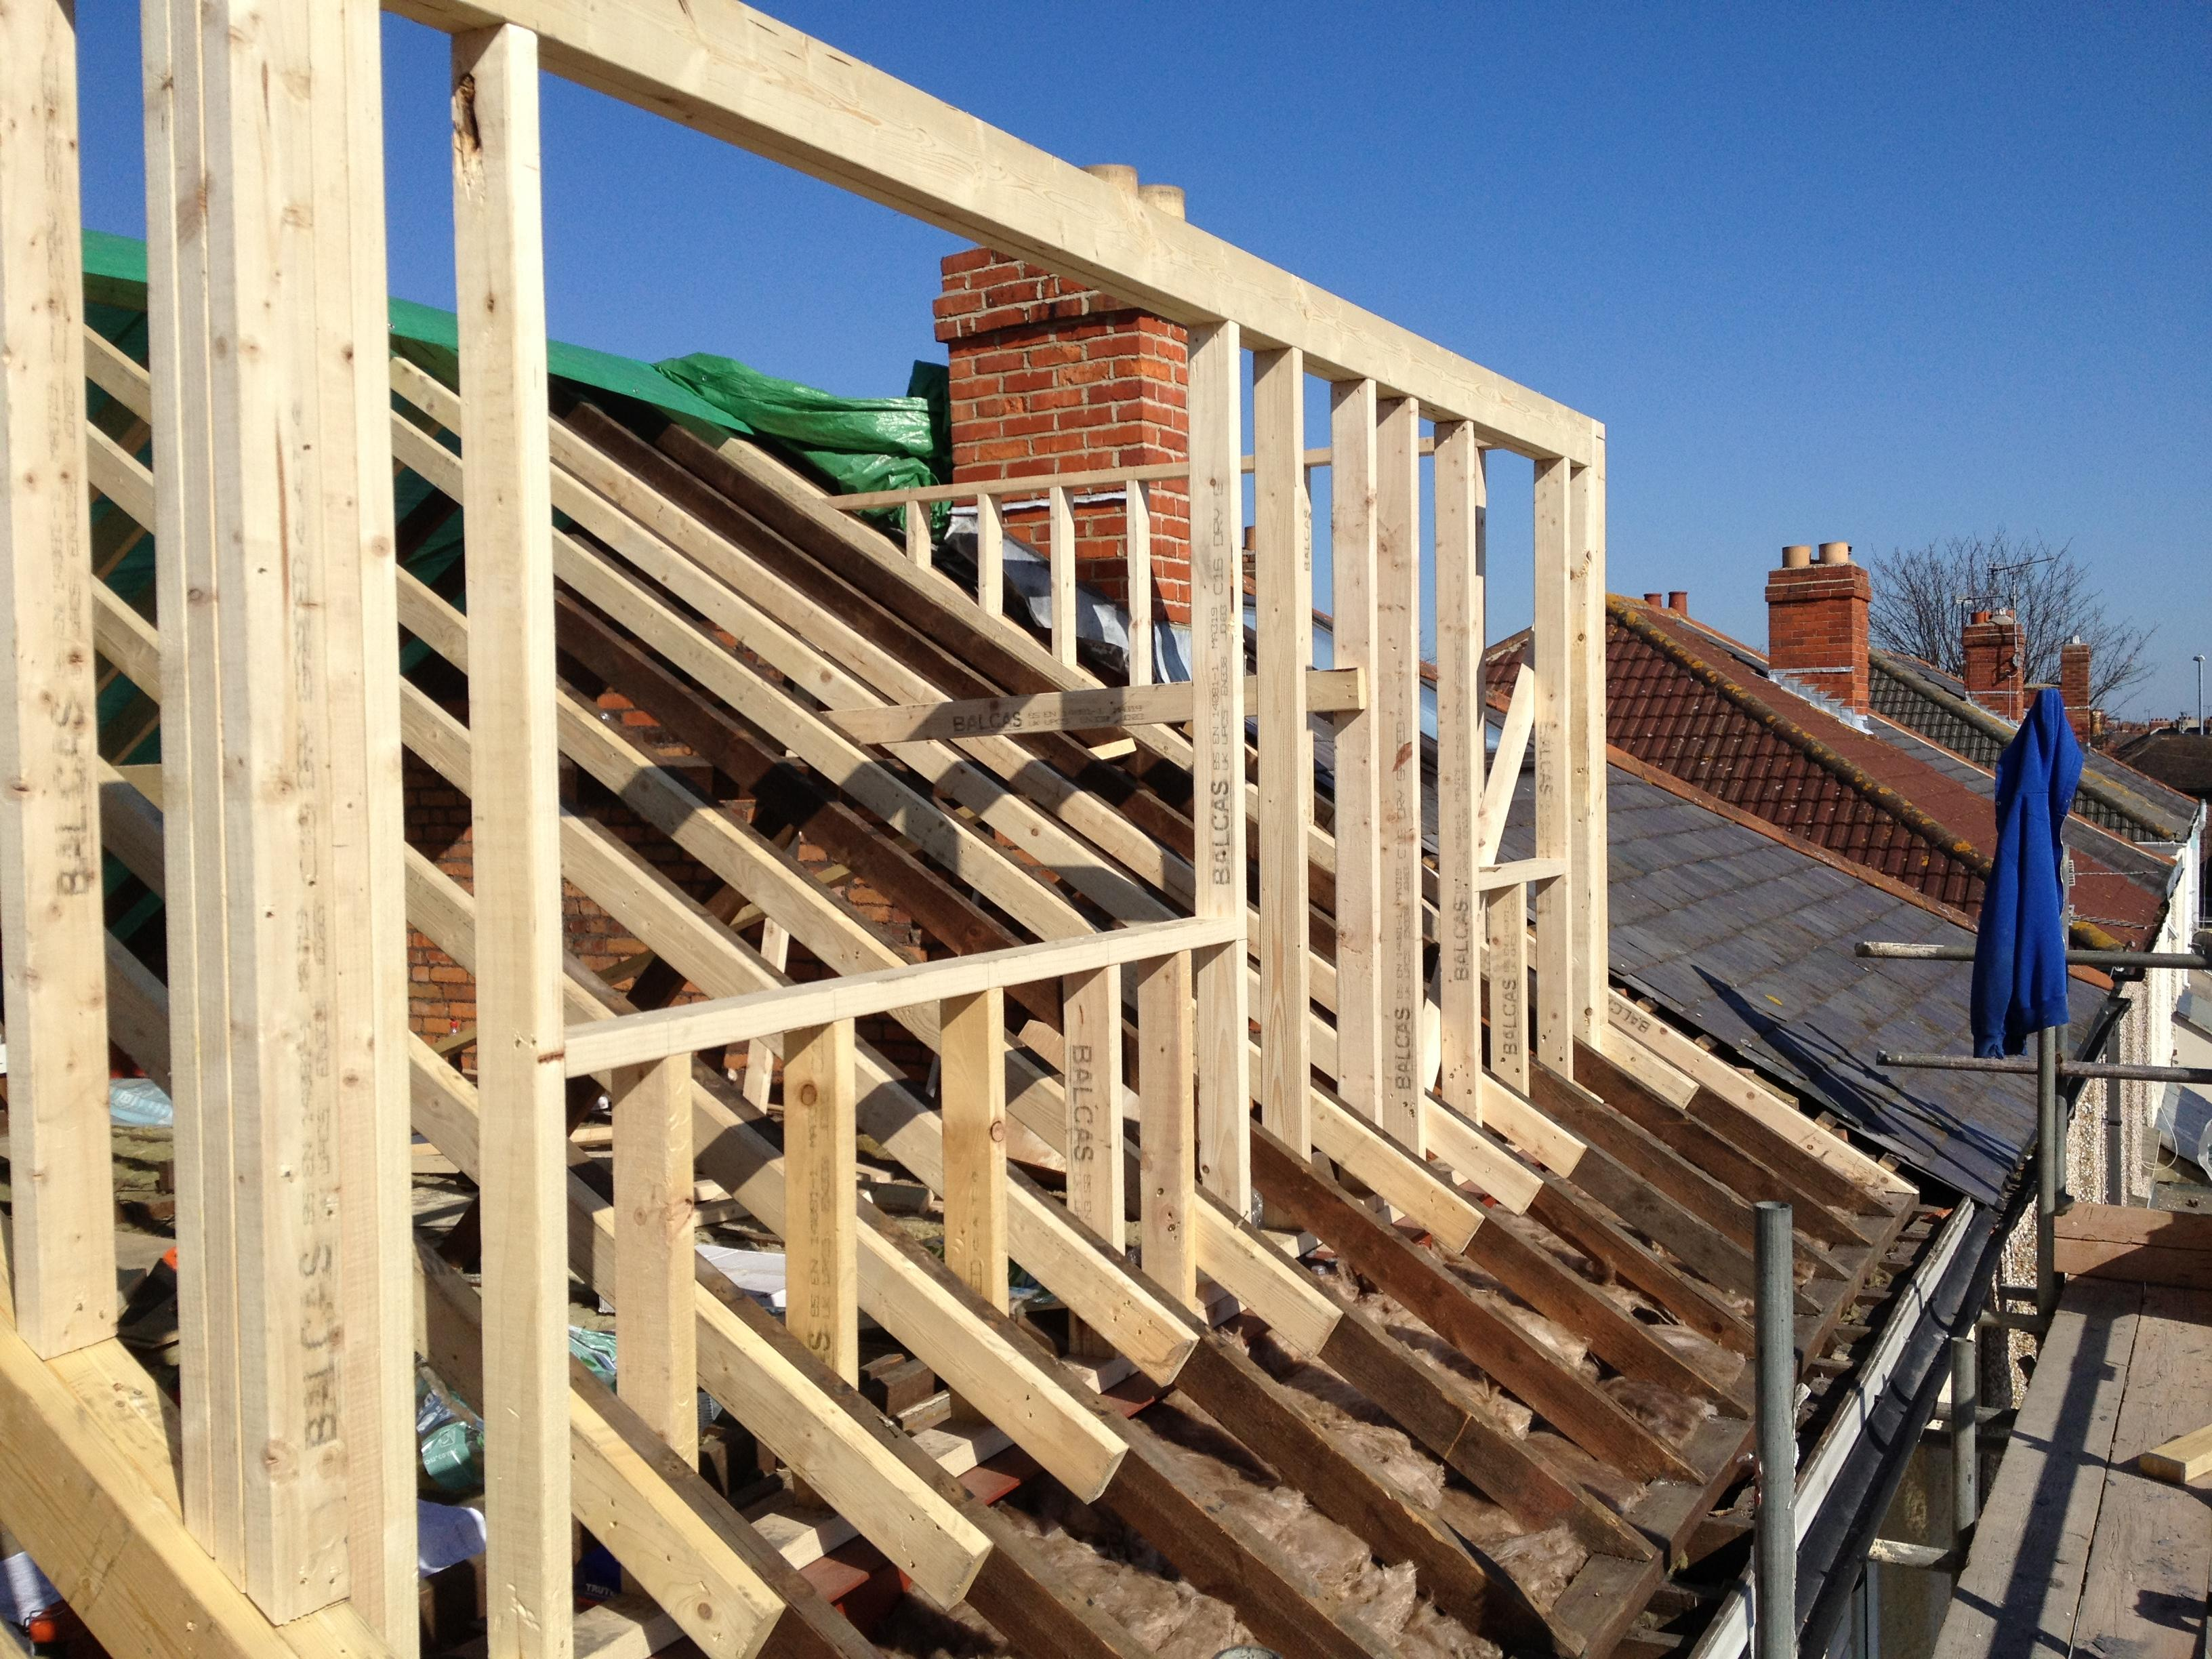 To buy a house with old uncertified loft conversion?